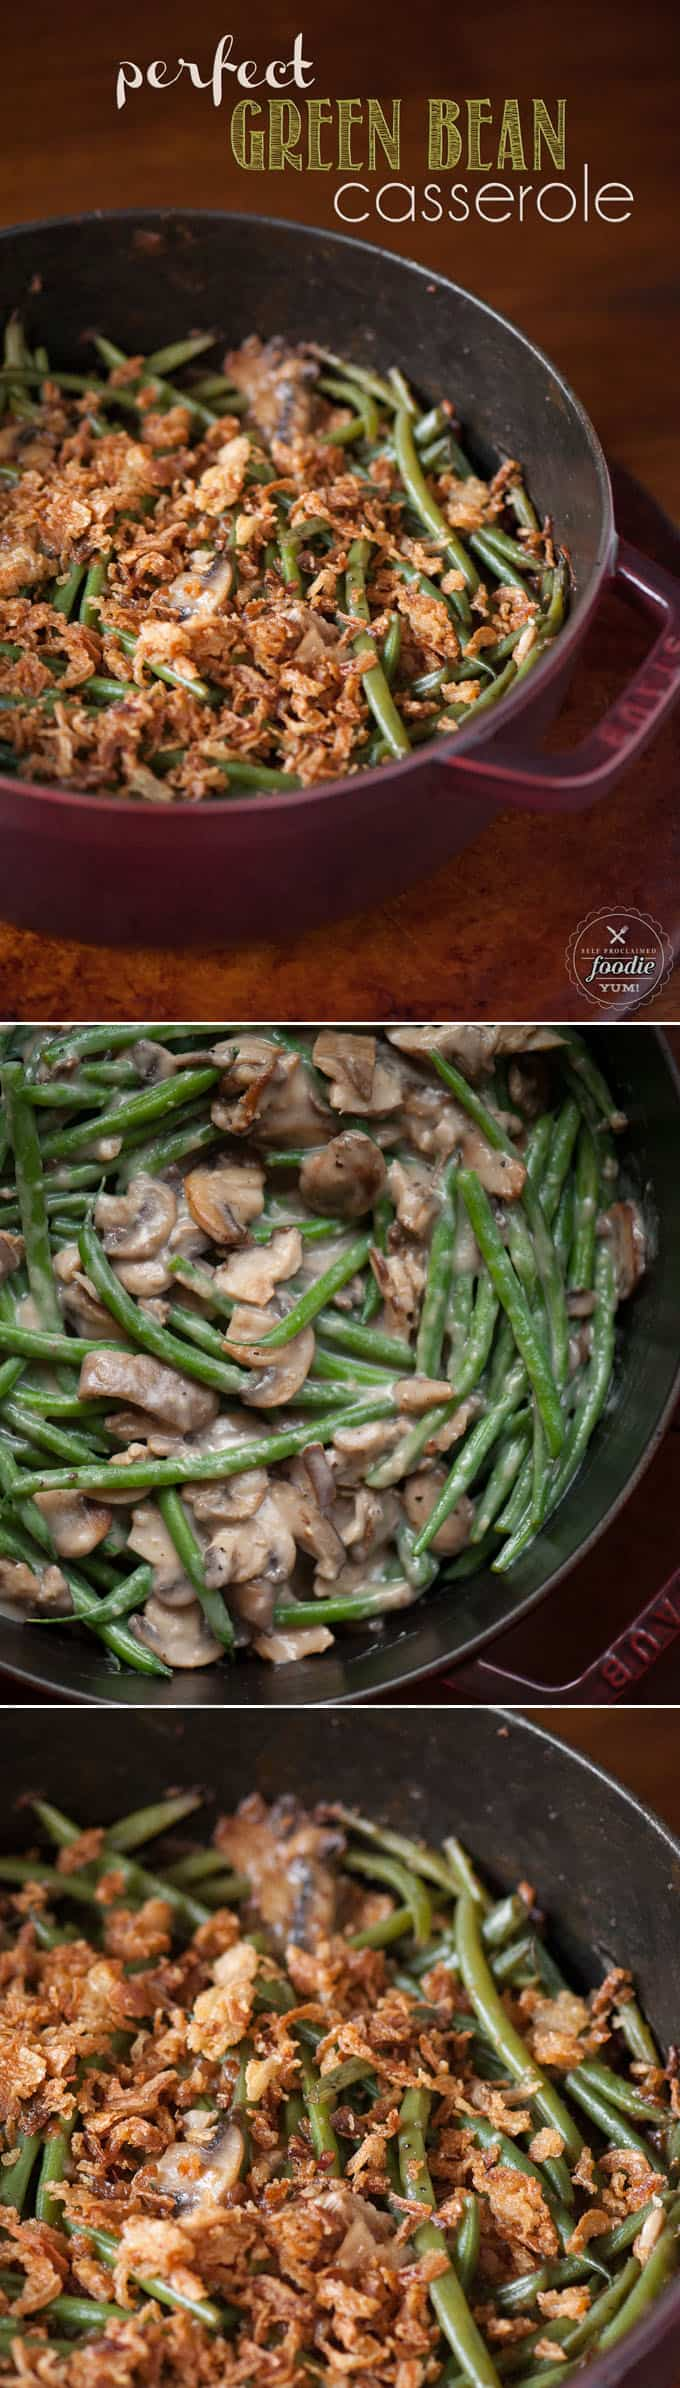 Perfect Green Bean Casserole is the best green bean casserole from scratch. Fresh green beans and mushrooms and crispy fried onions make this a classic! #thanksgiving #greenbeancasserole #fromscratch